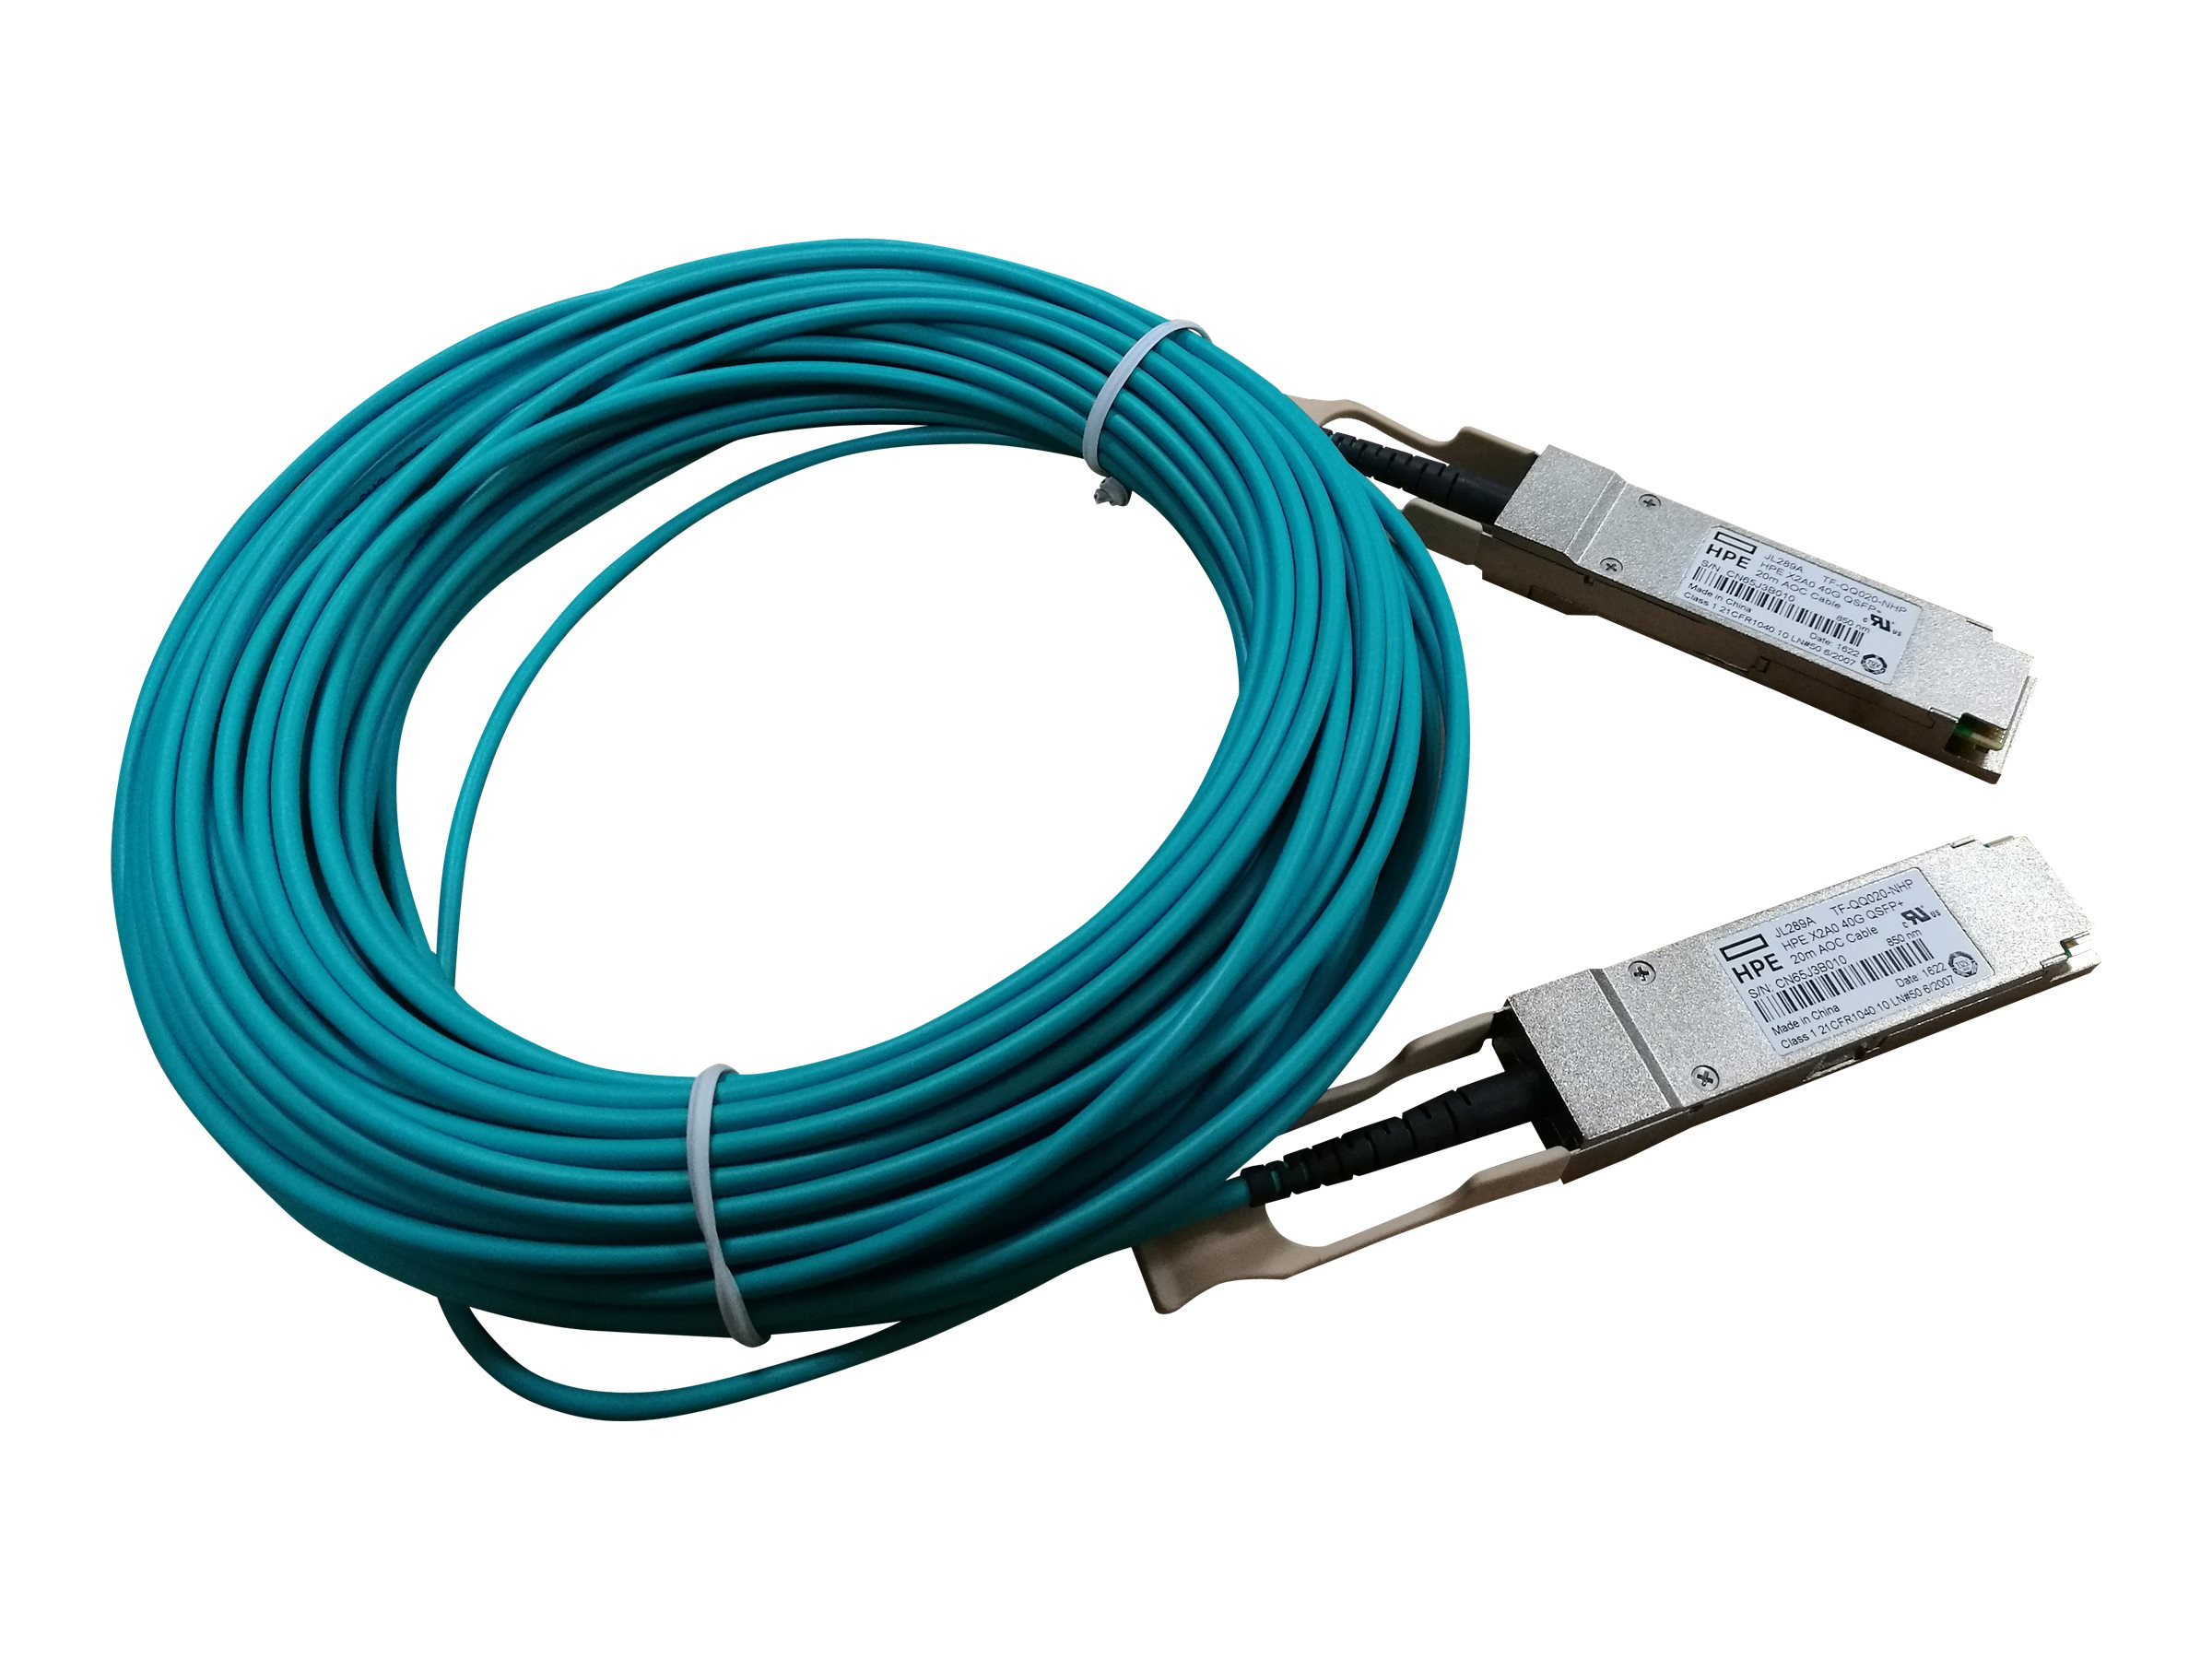 HPE X2A0 Active Optical Cable - network cable - 20 m